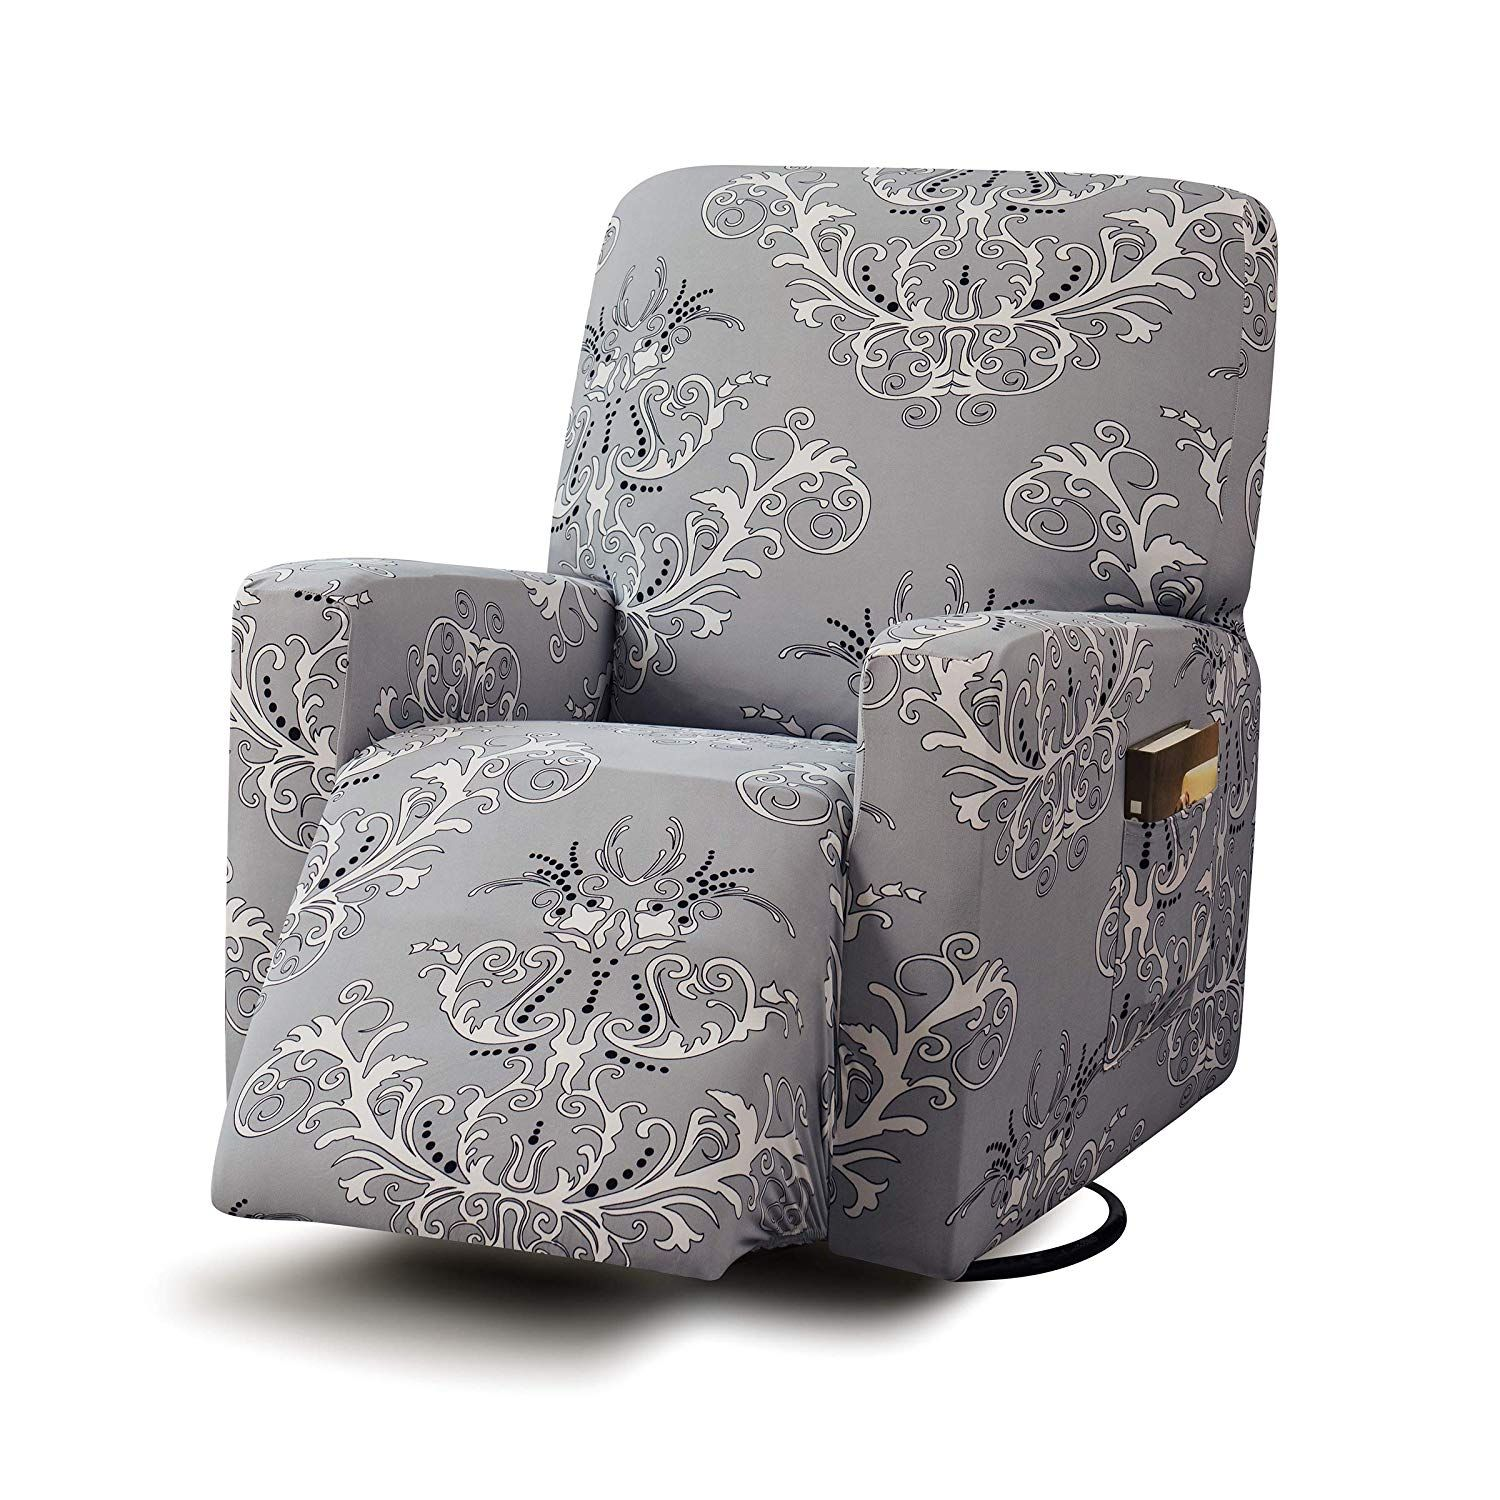 Amazon Com Tikami Stretch Printed Recliner Chair Covers Washable Sofa Slipcovers Furniture Protector With R Recliner Chair Covers Washable Sofa Recliner Chair